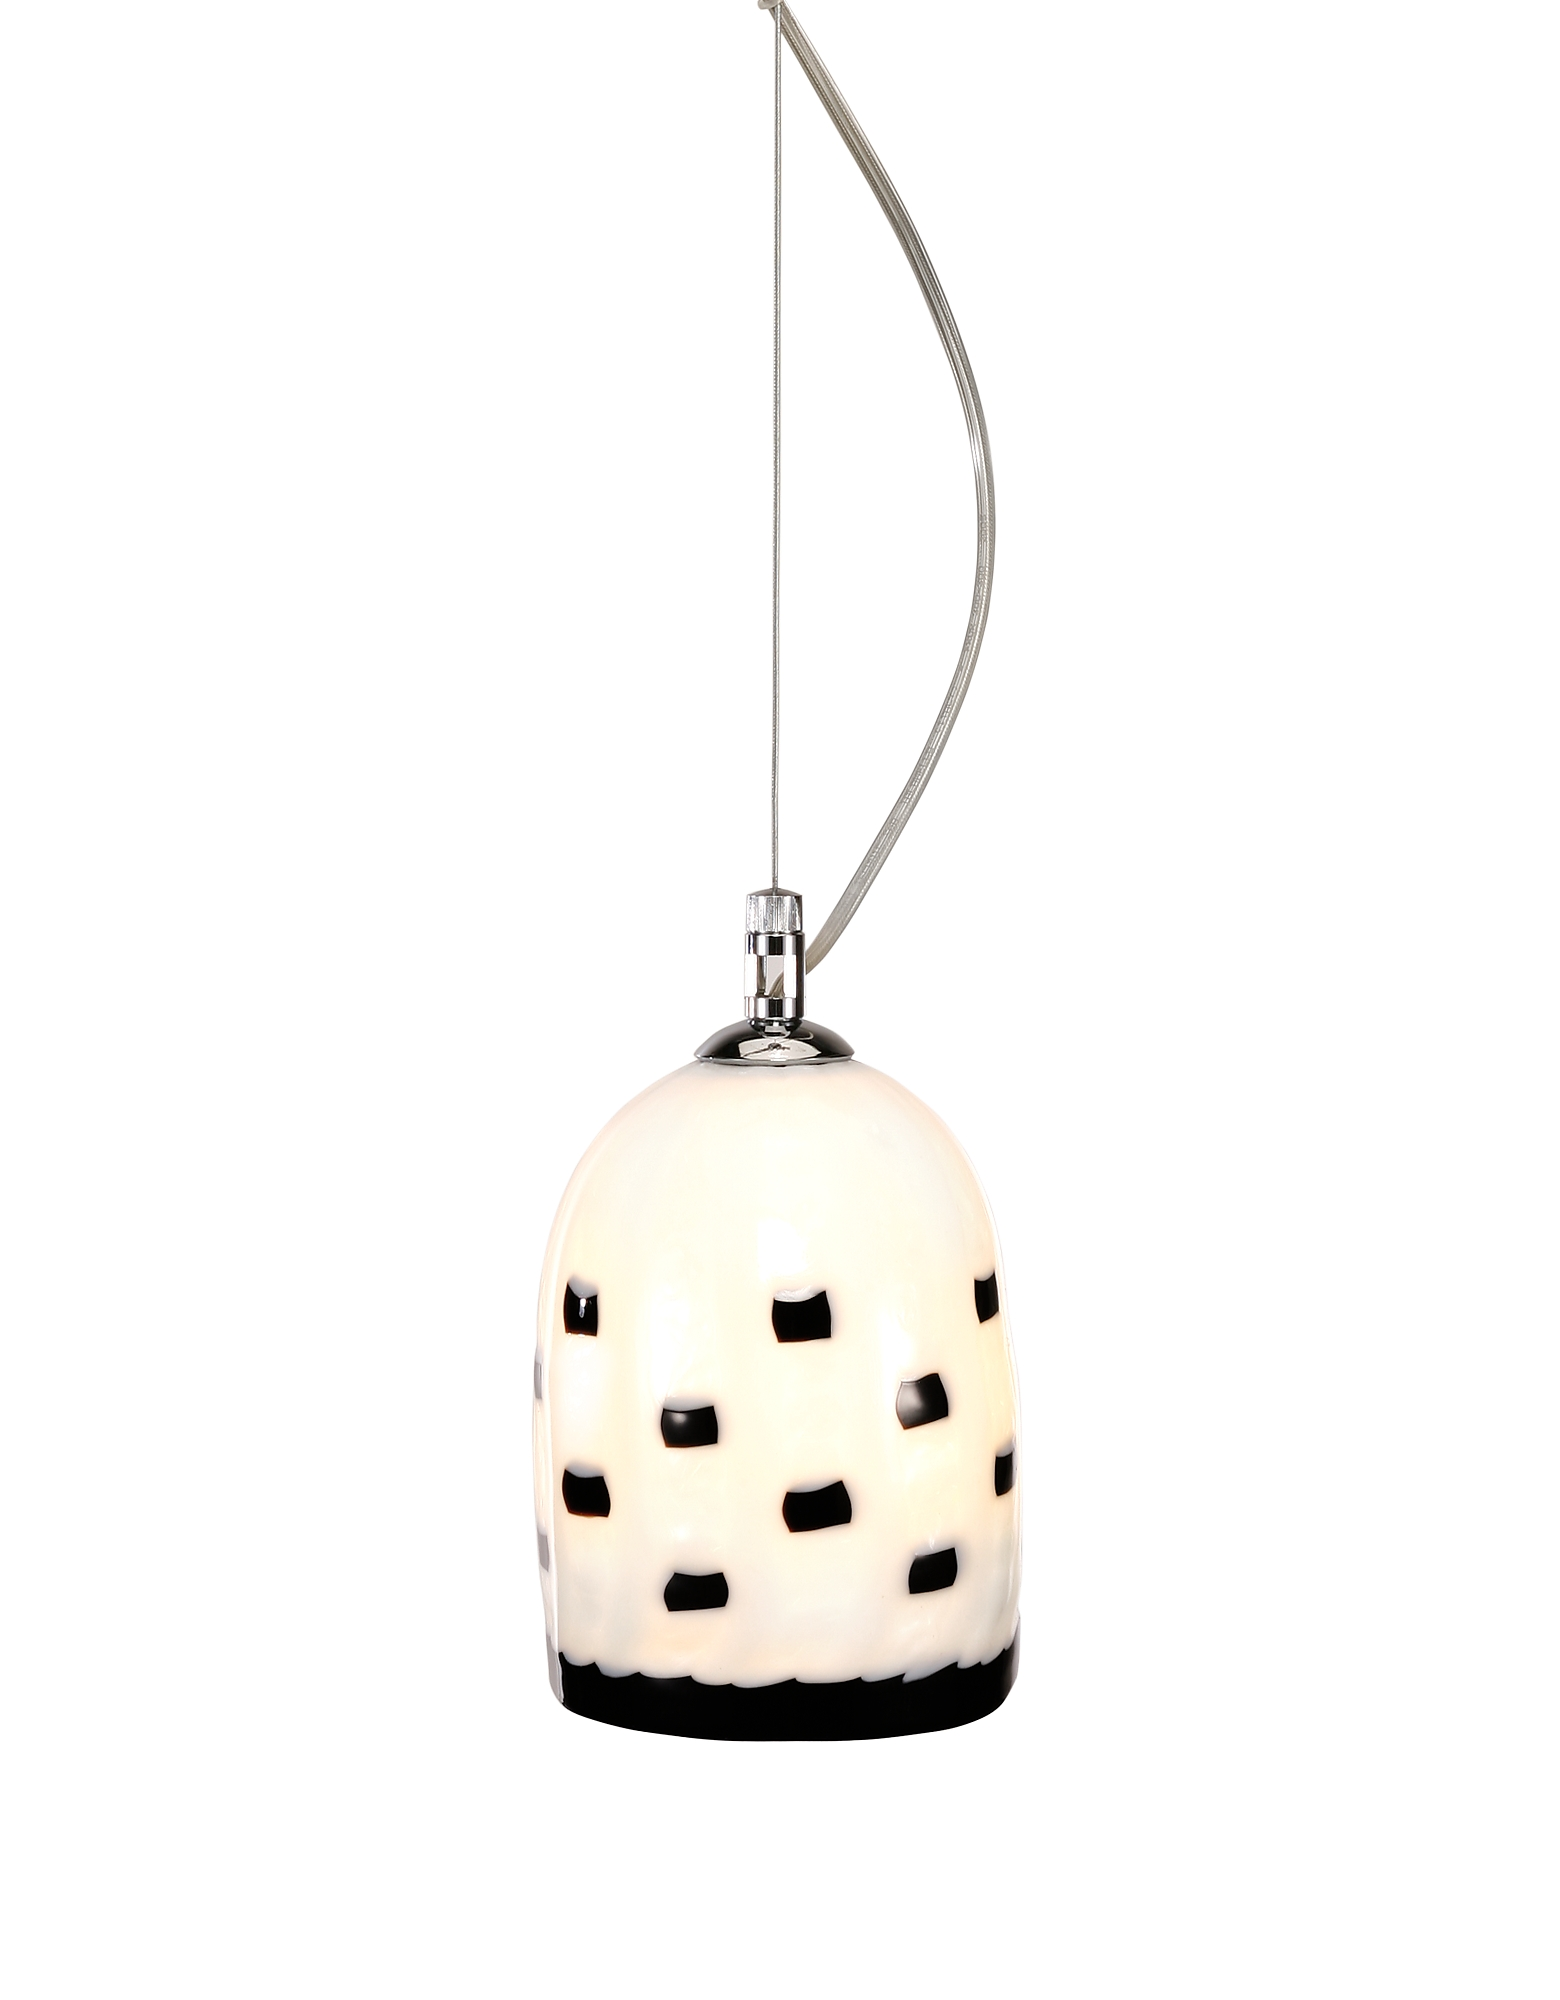 Voltolina Designer Decor & Lighting, Meg B & W - Black And White Murano Handmade Glass Pendant Lamp